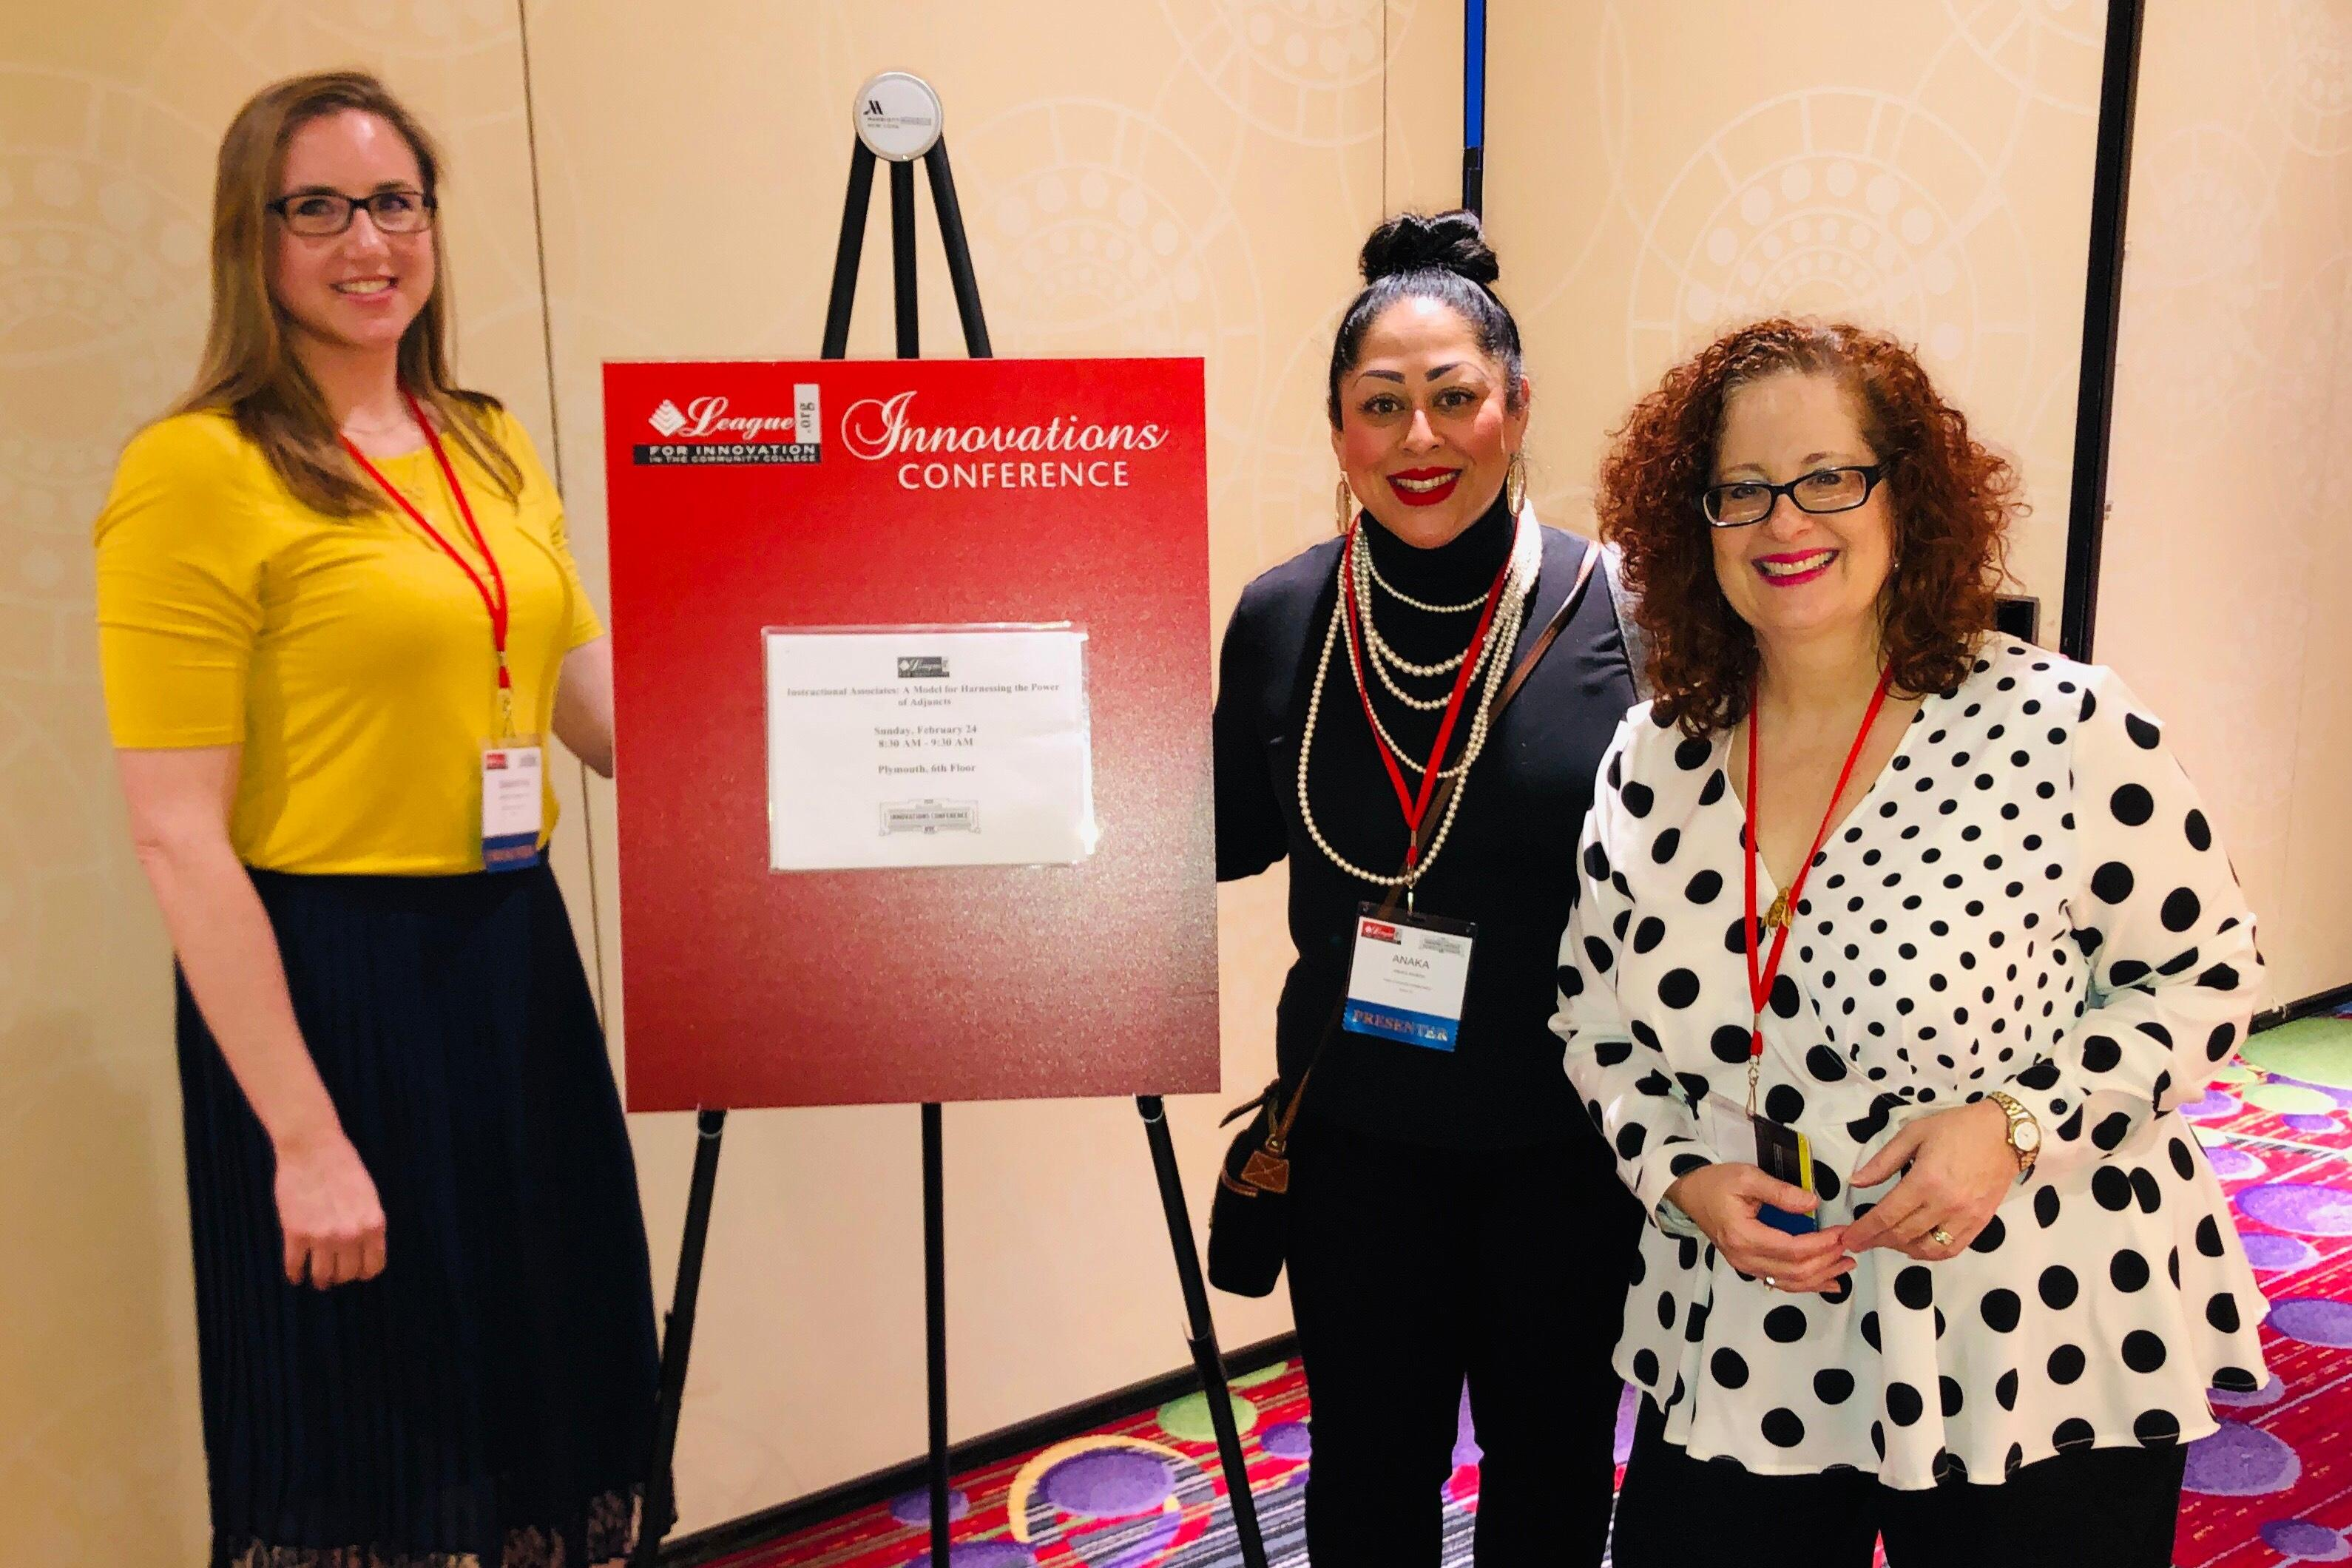 ACC Instructional Associates Susan Meigs, Anaka Rivera, and Samantha Soebbing at the National League for Innovation Conference.